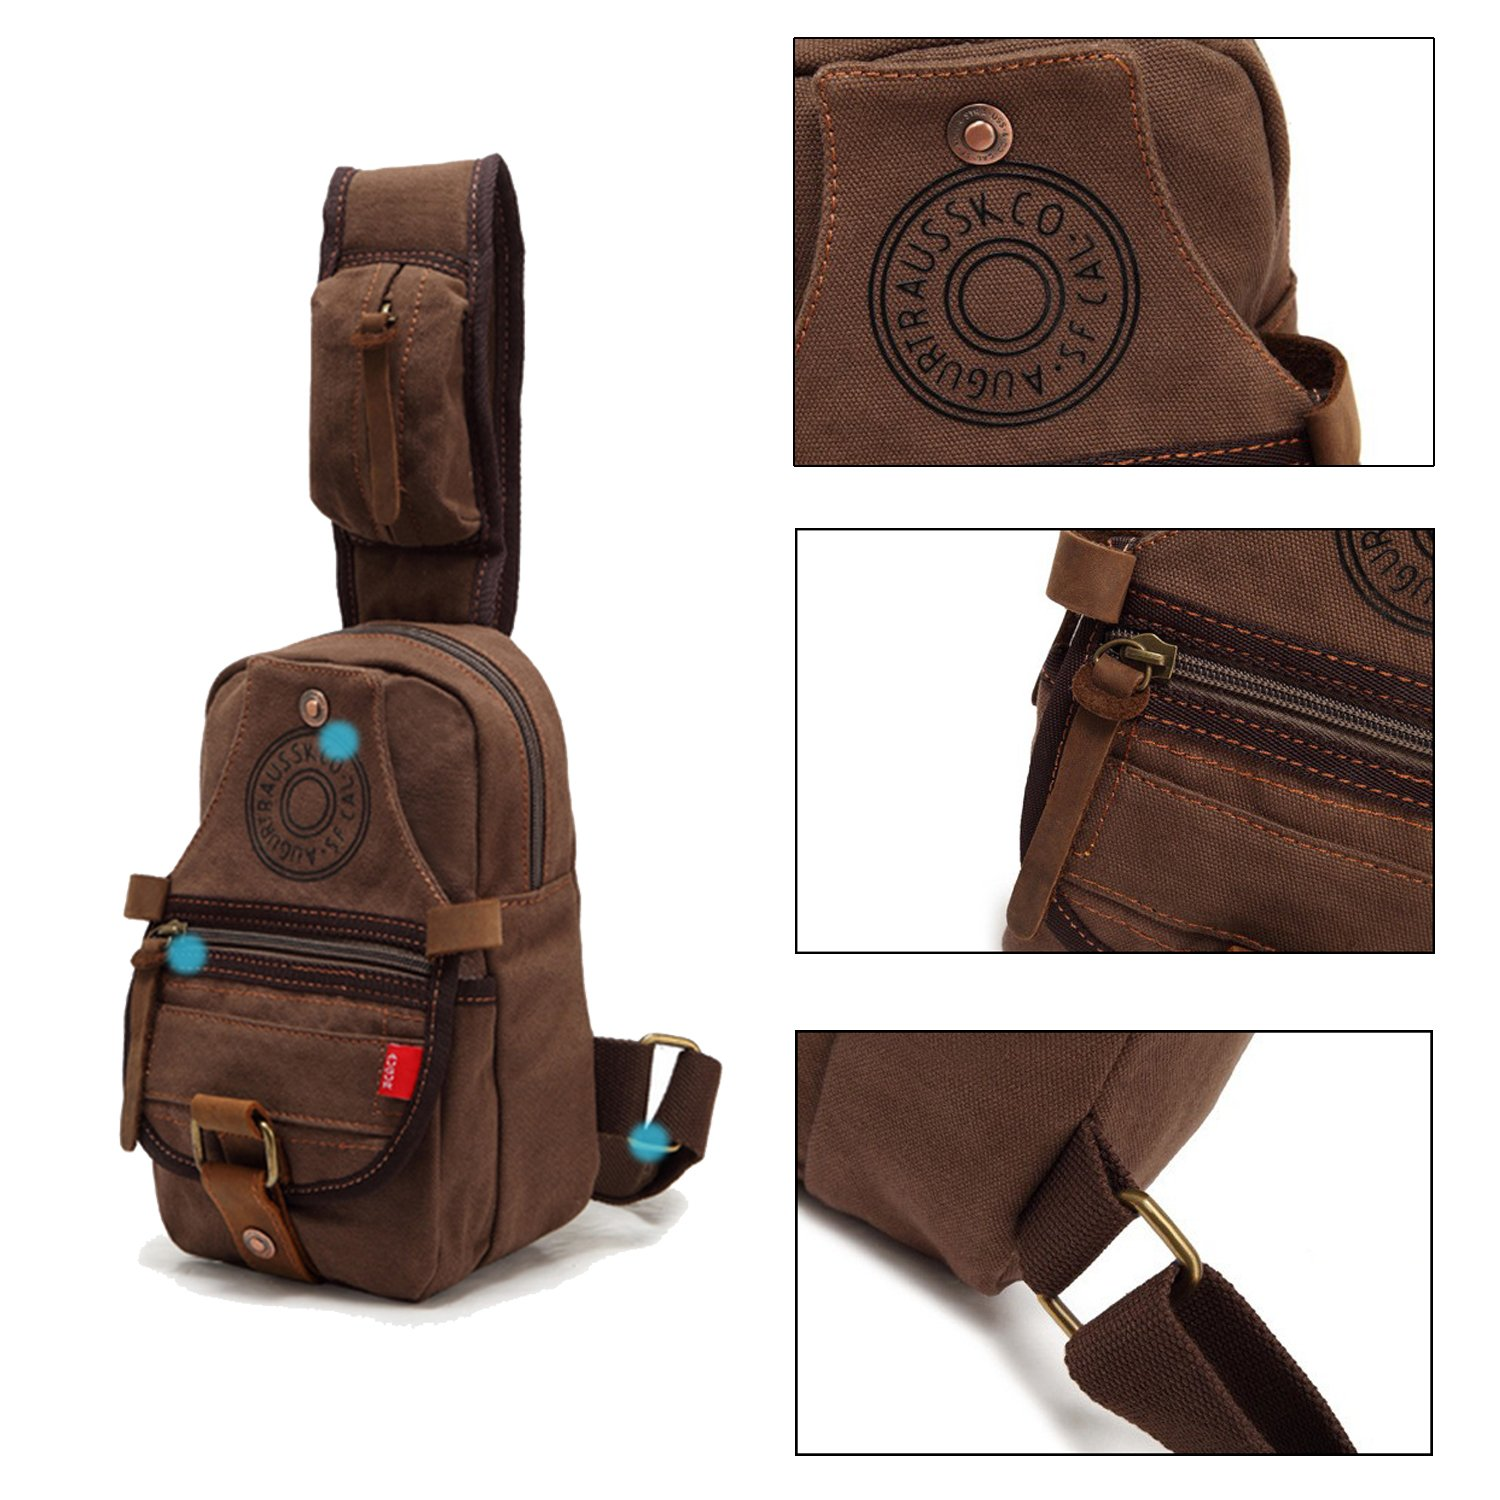 3874aa226a Amazon.com  Canvas Sling Bag Chest Shoulder mini Backpack for Women Men  girl small Daypack  Clothing